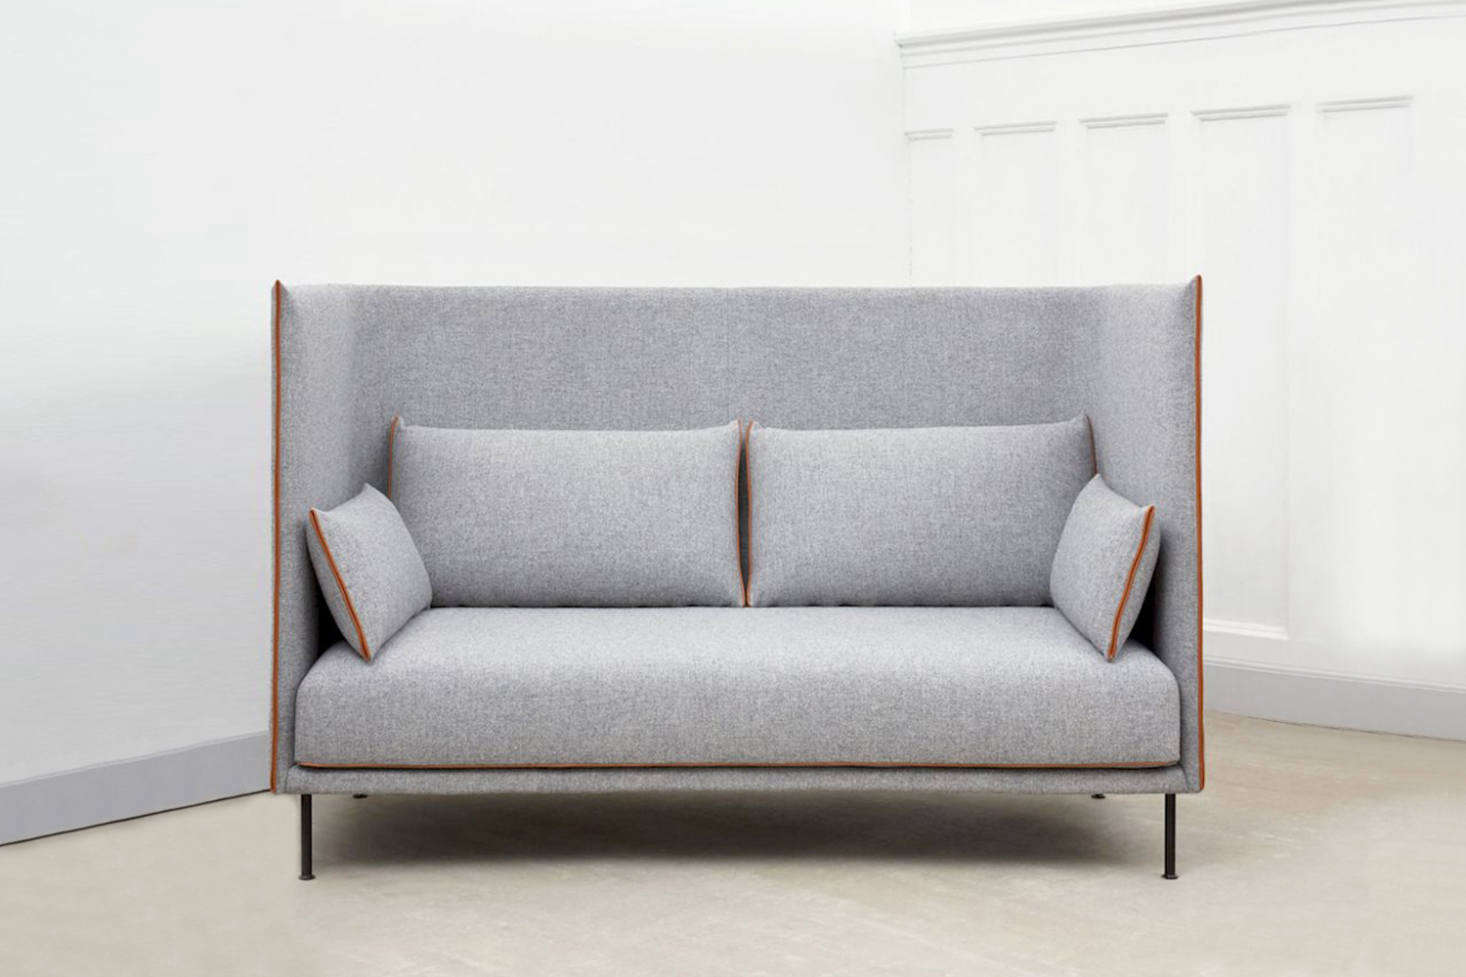 Attirant The HAY Silhouette High Backed Sofa Is Made With A Fiberglass Shell And Oak  Frame And